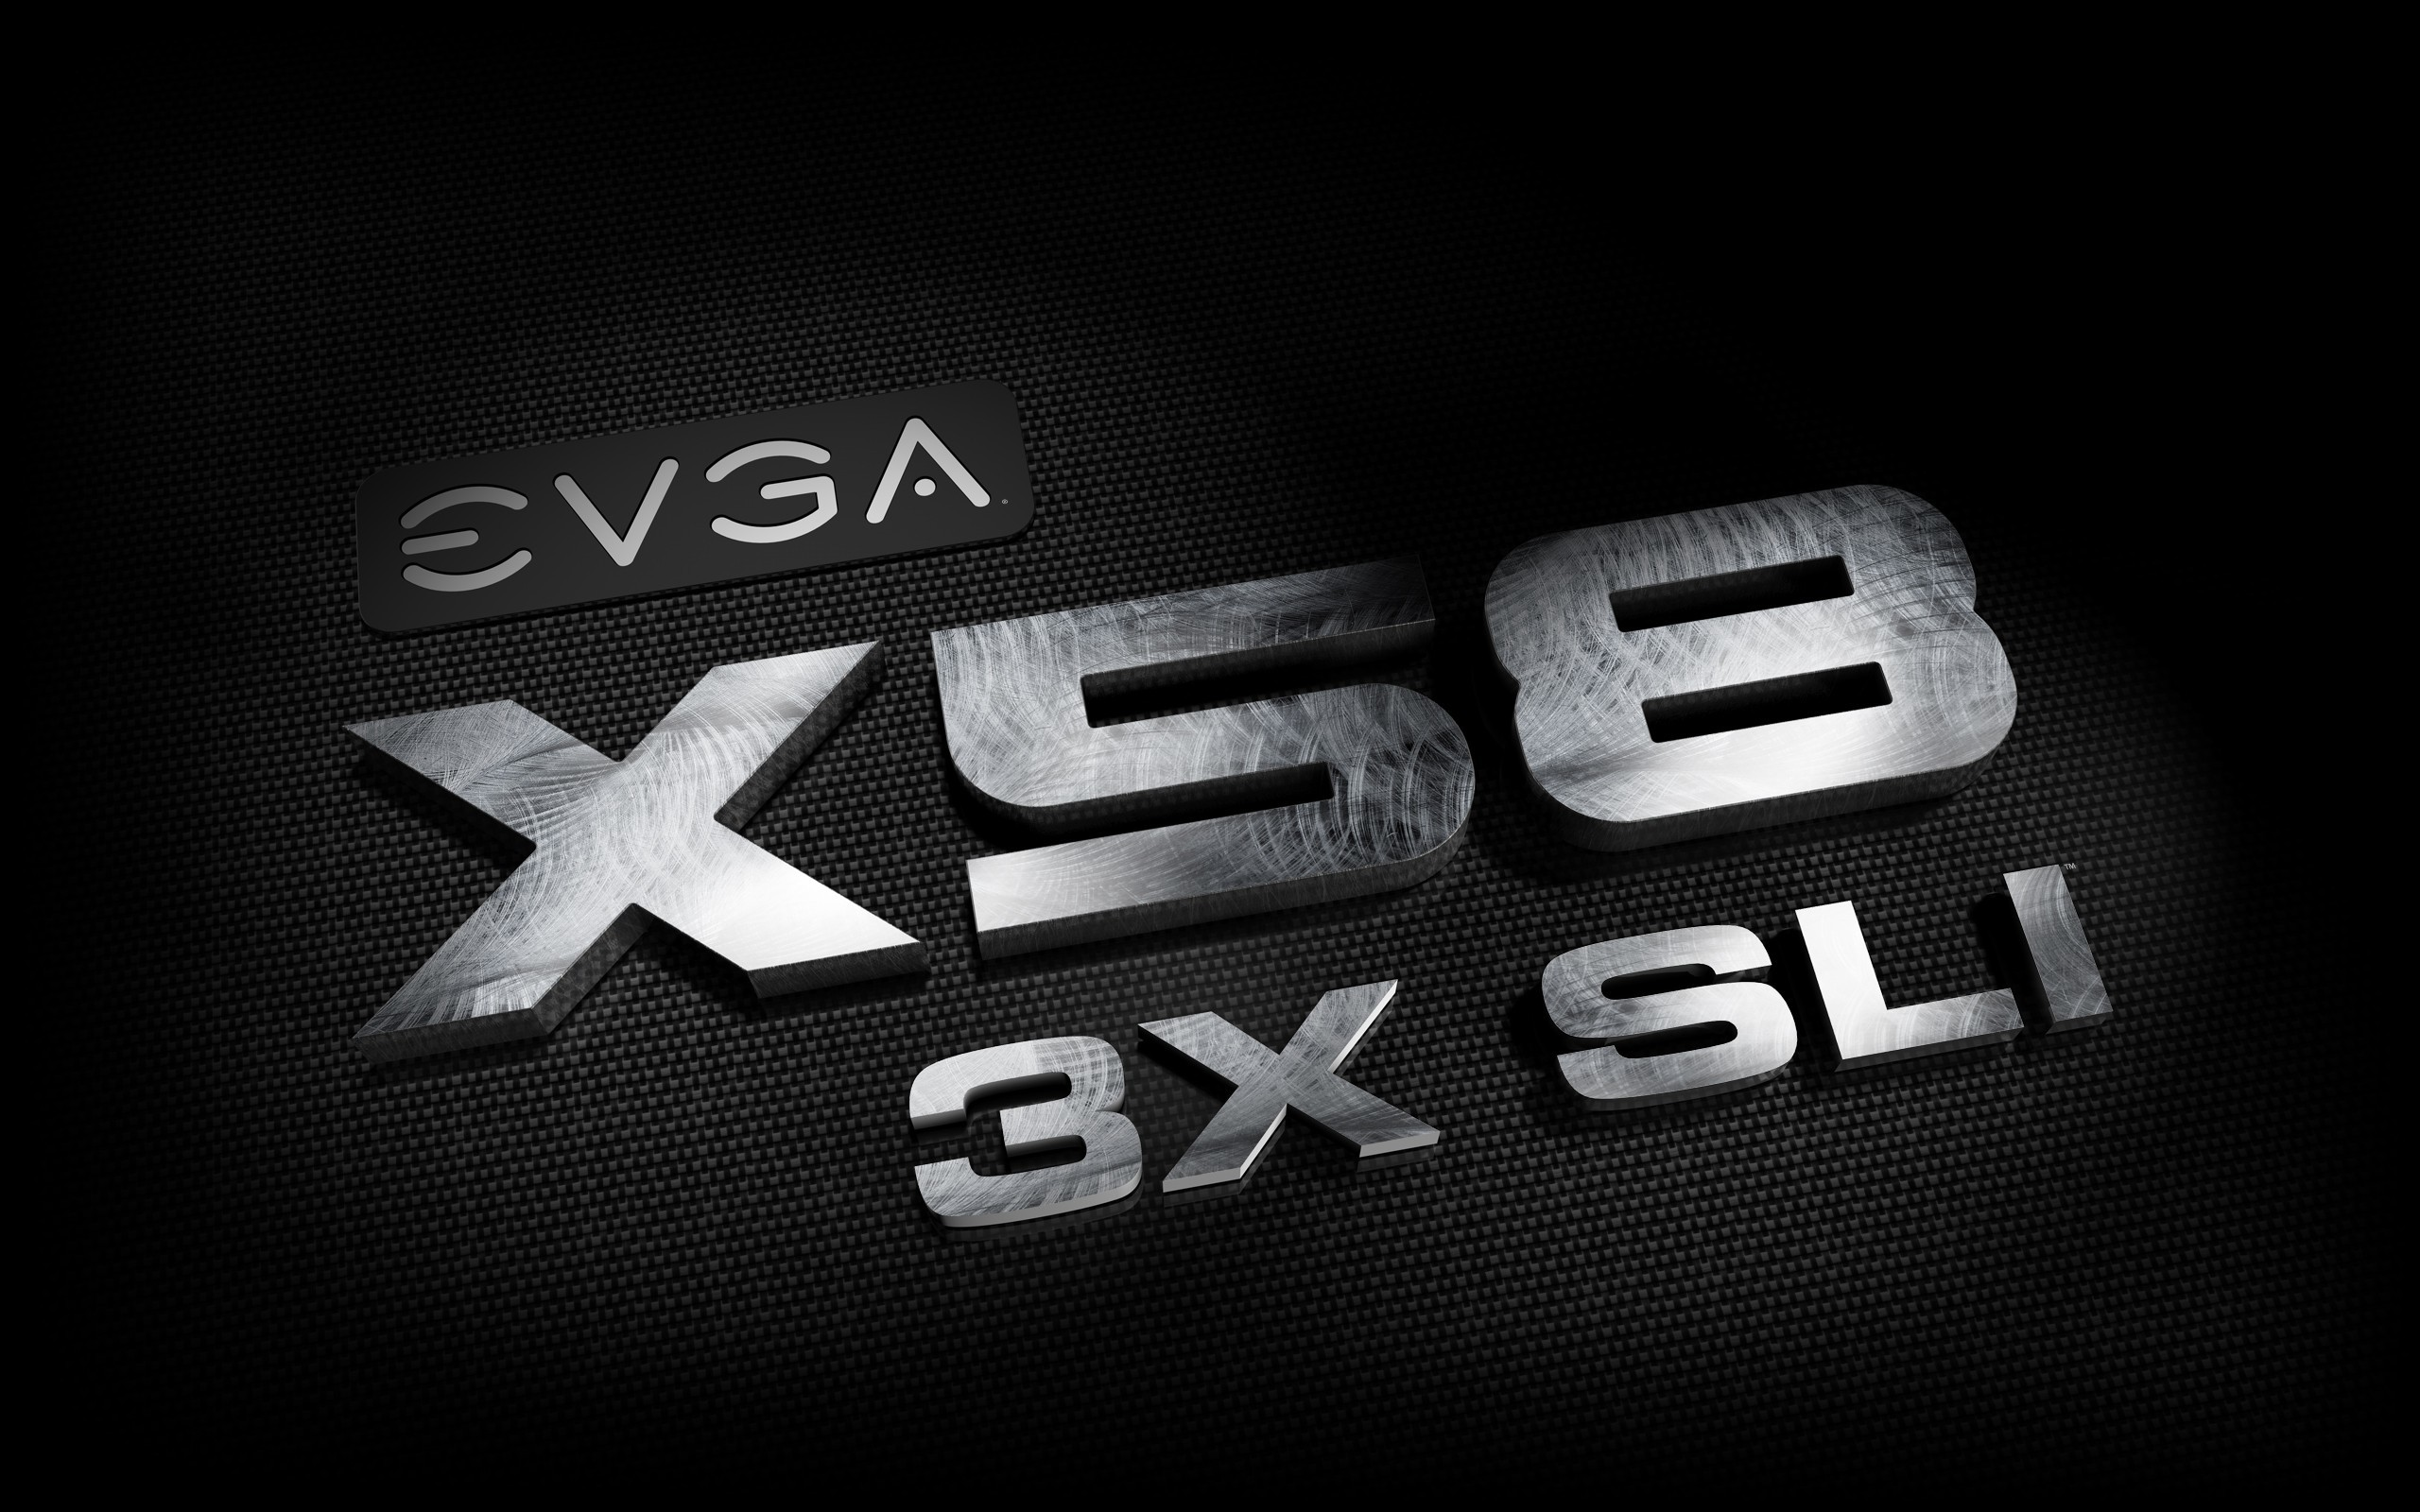 evga HD Wallpaper